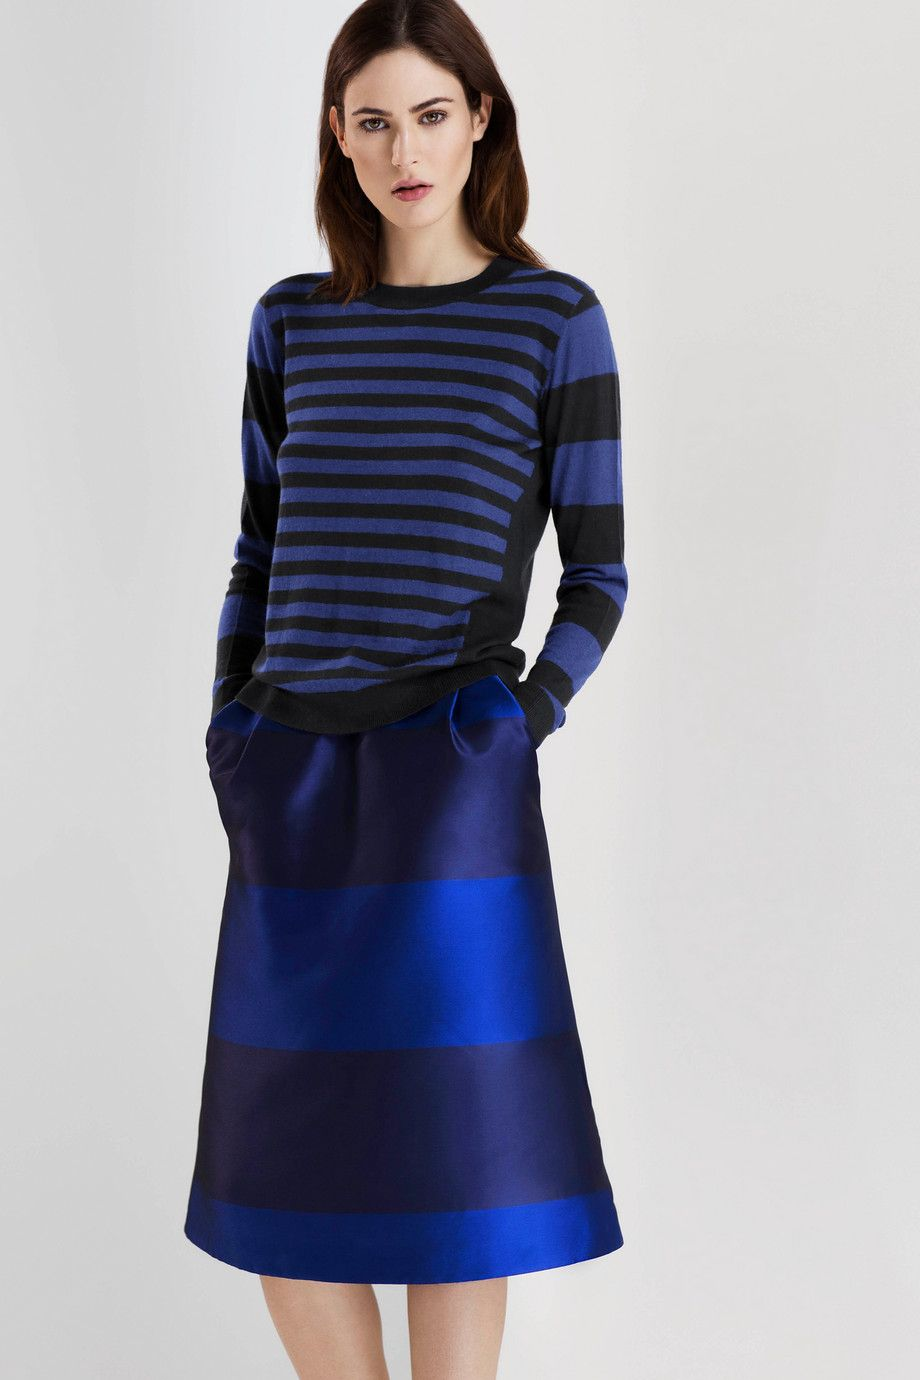 Like the stripe on stripe outfit from iris u ink aida striped